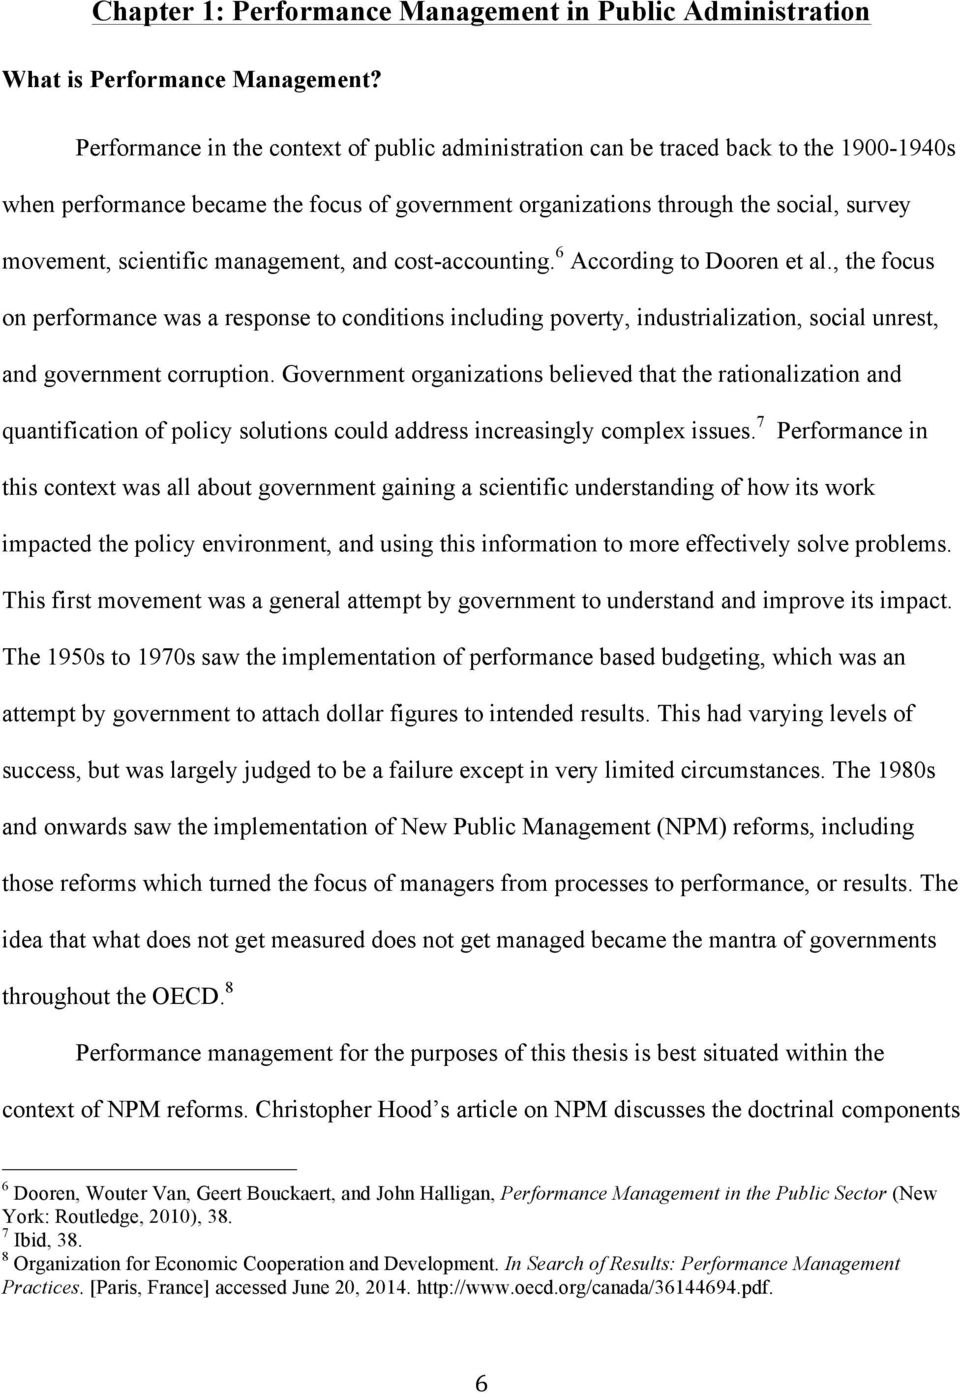 management, and cost-accounting. 6 According to Dooren et al., the focus on performance was a response to conditions including poverty, industrialization, social unrest, and government corruption.